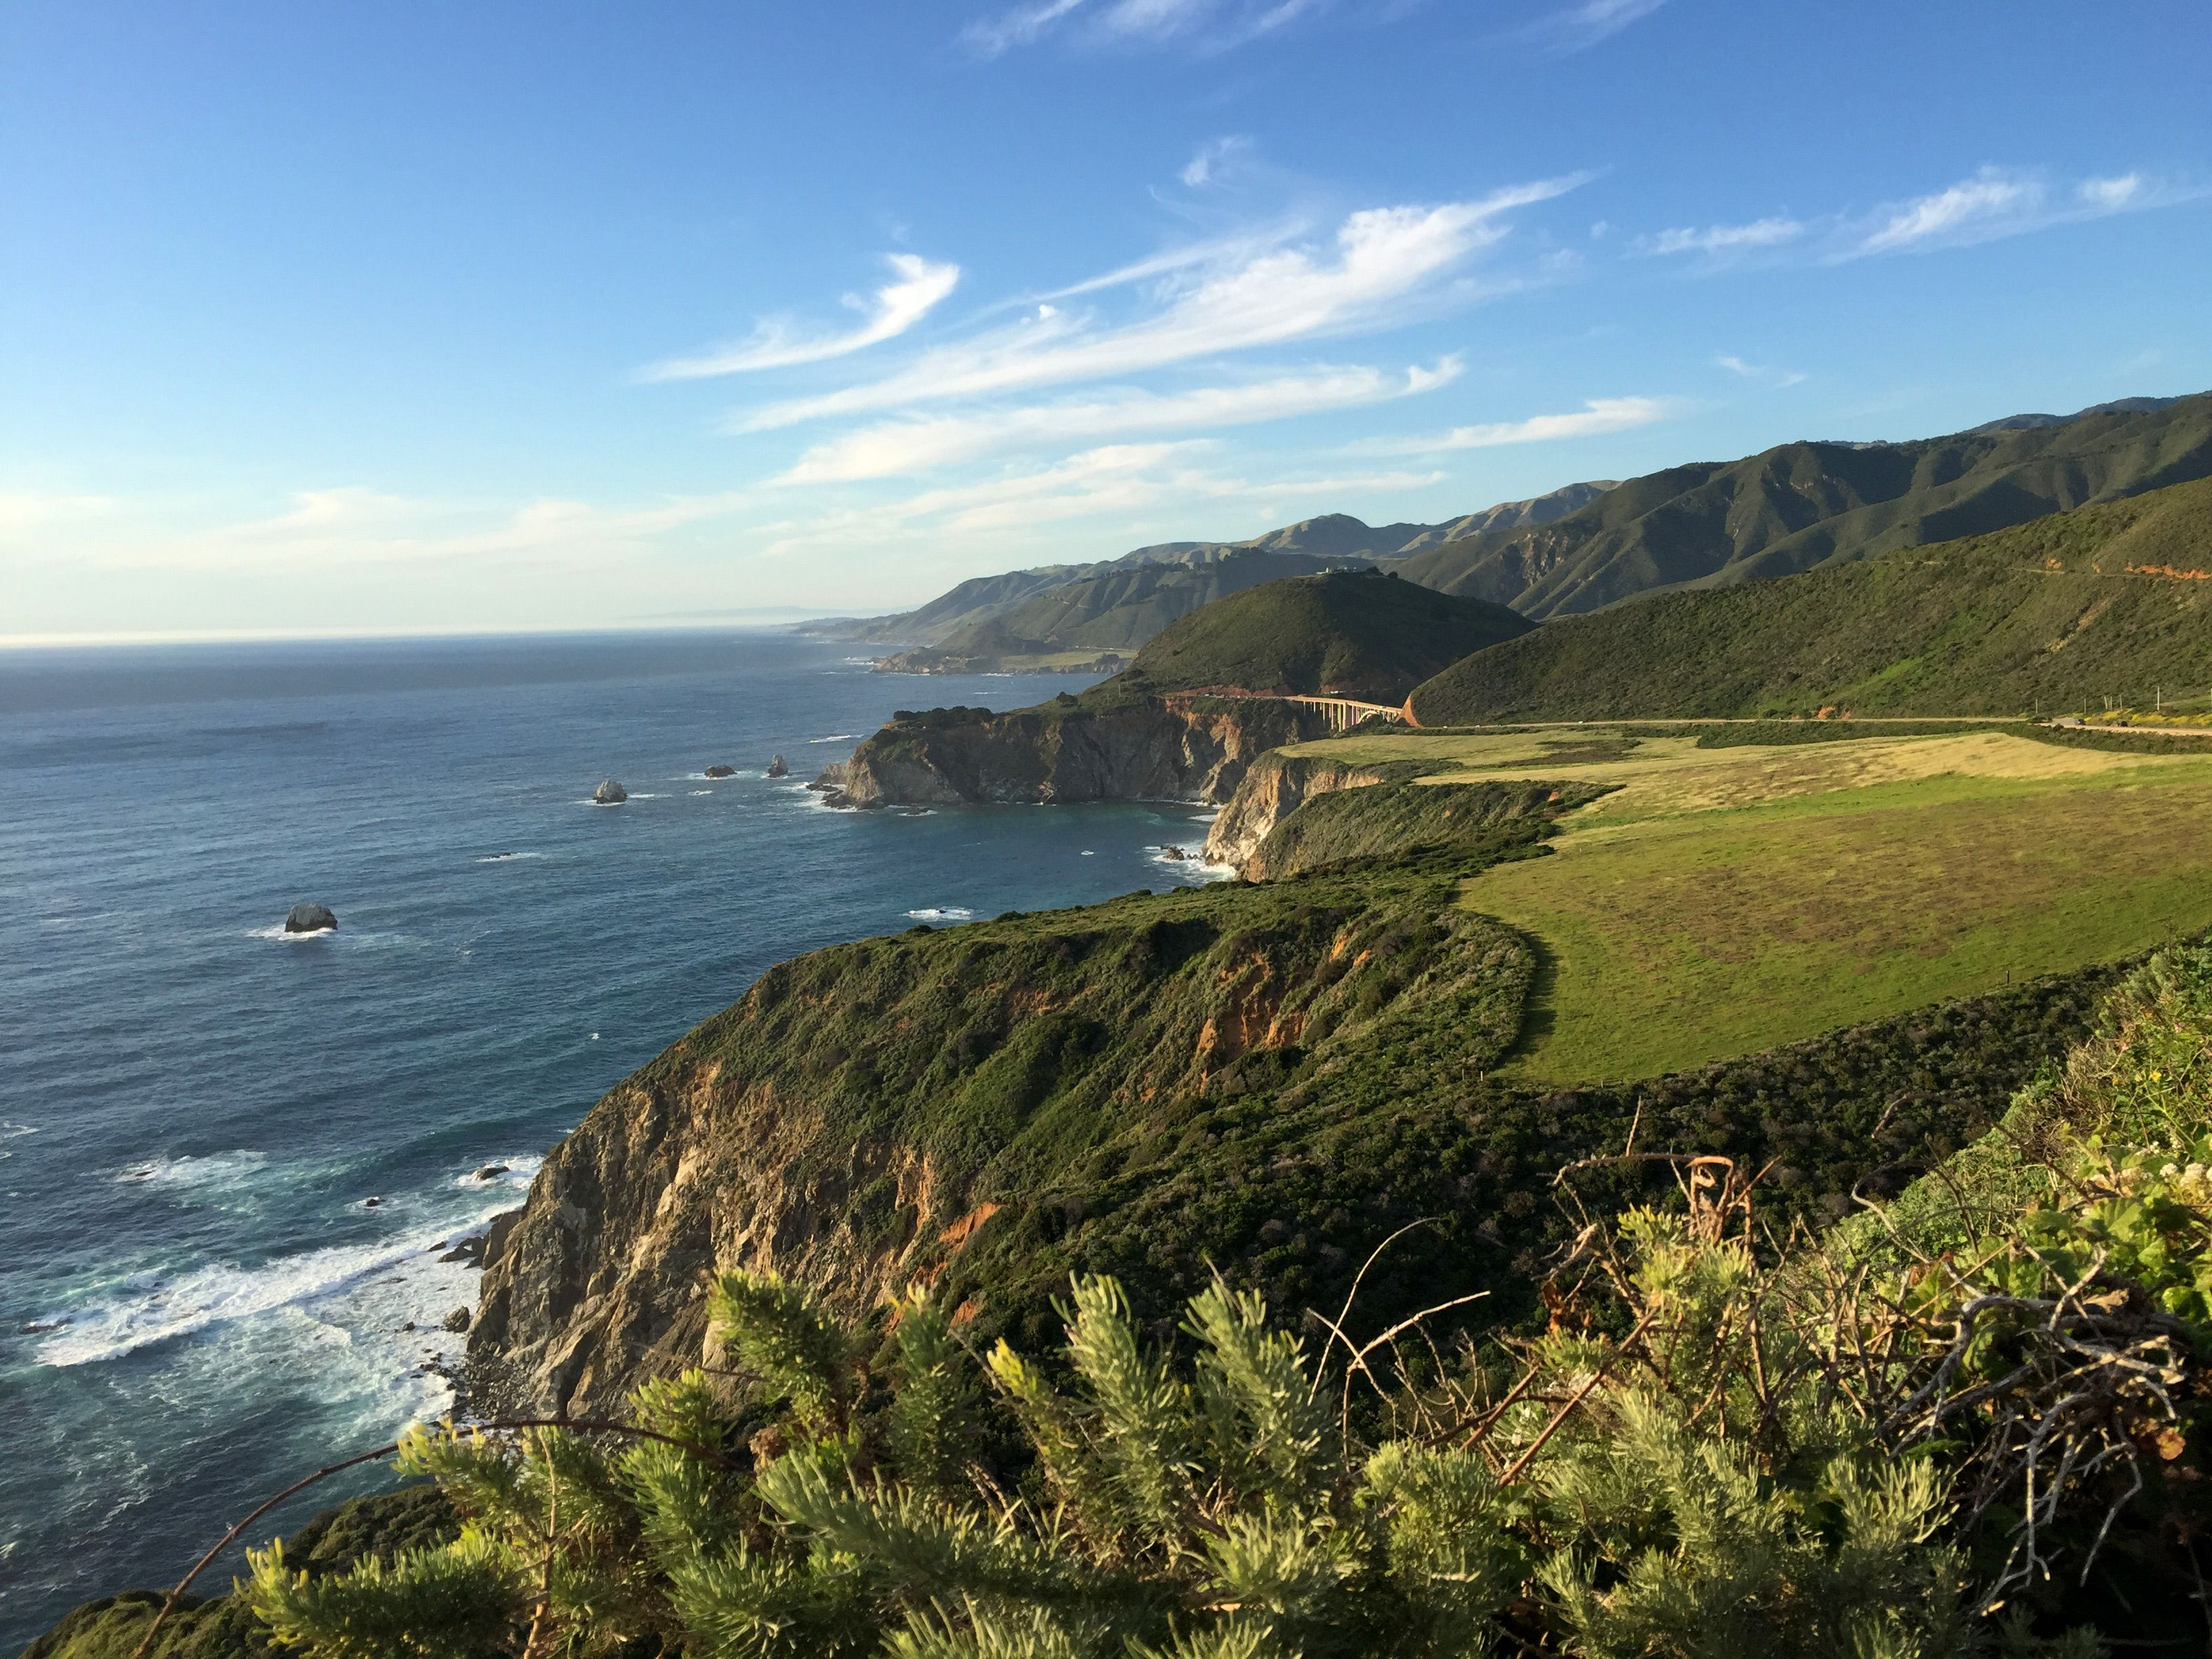 My Trip To The End Of The Earth Big Sur California Oc Unedited 2448x2448 Landscape Photography Nature Big Sur California Big Sur